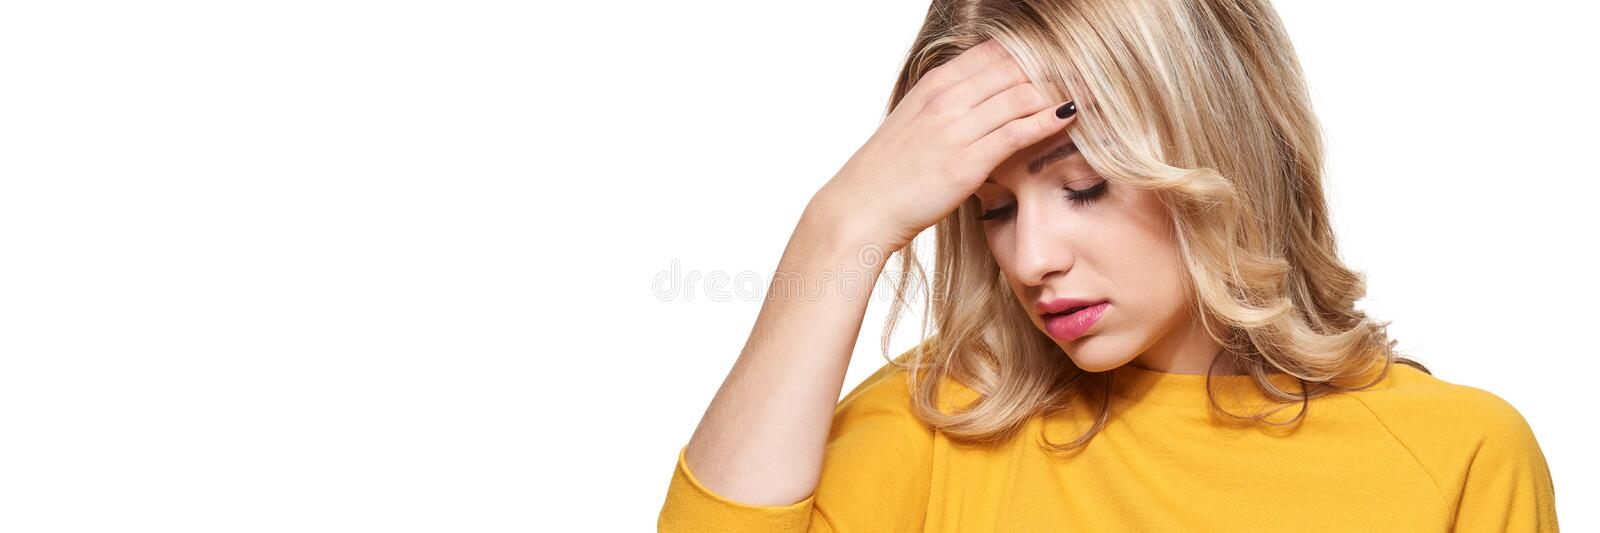 Stressed Exhausted Young Female Having Headache. Feeling Pressure And Stress banner. Depressed Woman With Head in Hands. royalty free stock photography